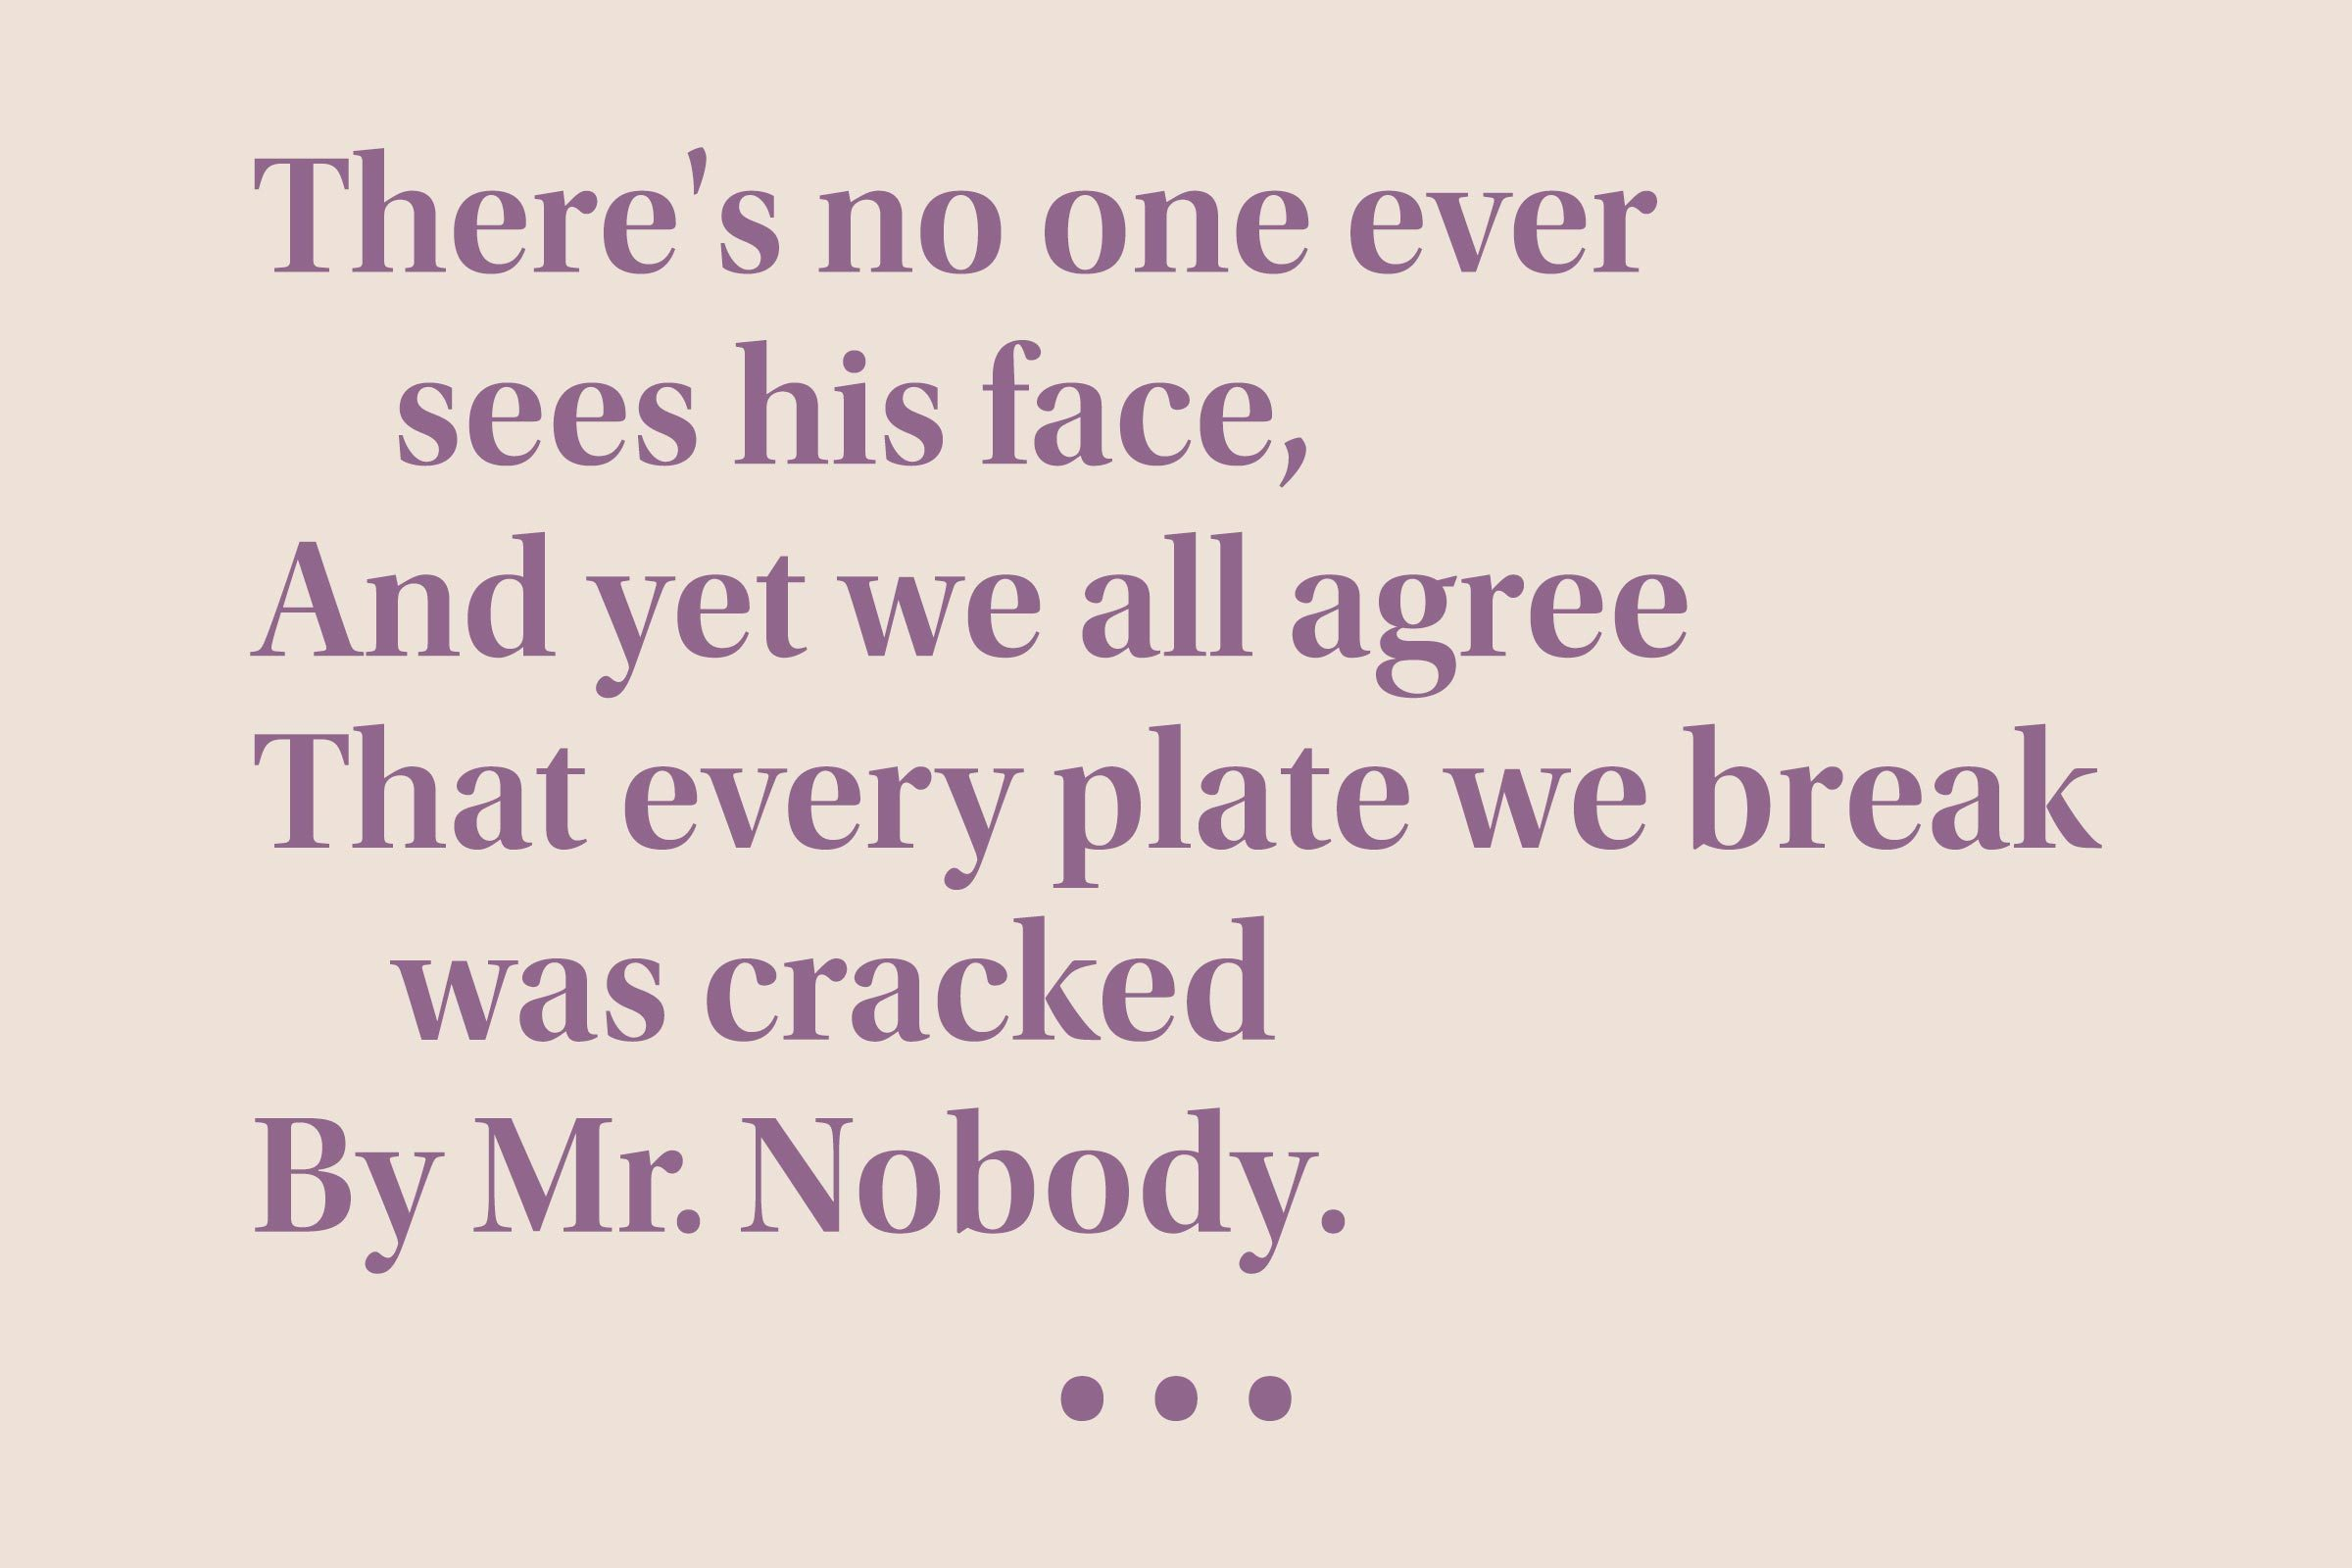 """""""There's no one ever sees his face, And yet we all agree That every plate we break was cracked By Mr. Nobody."""""""